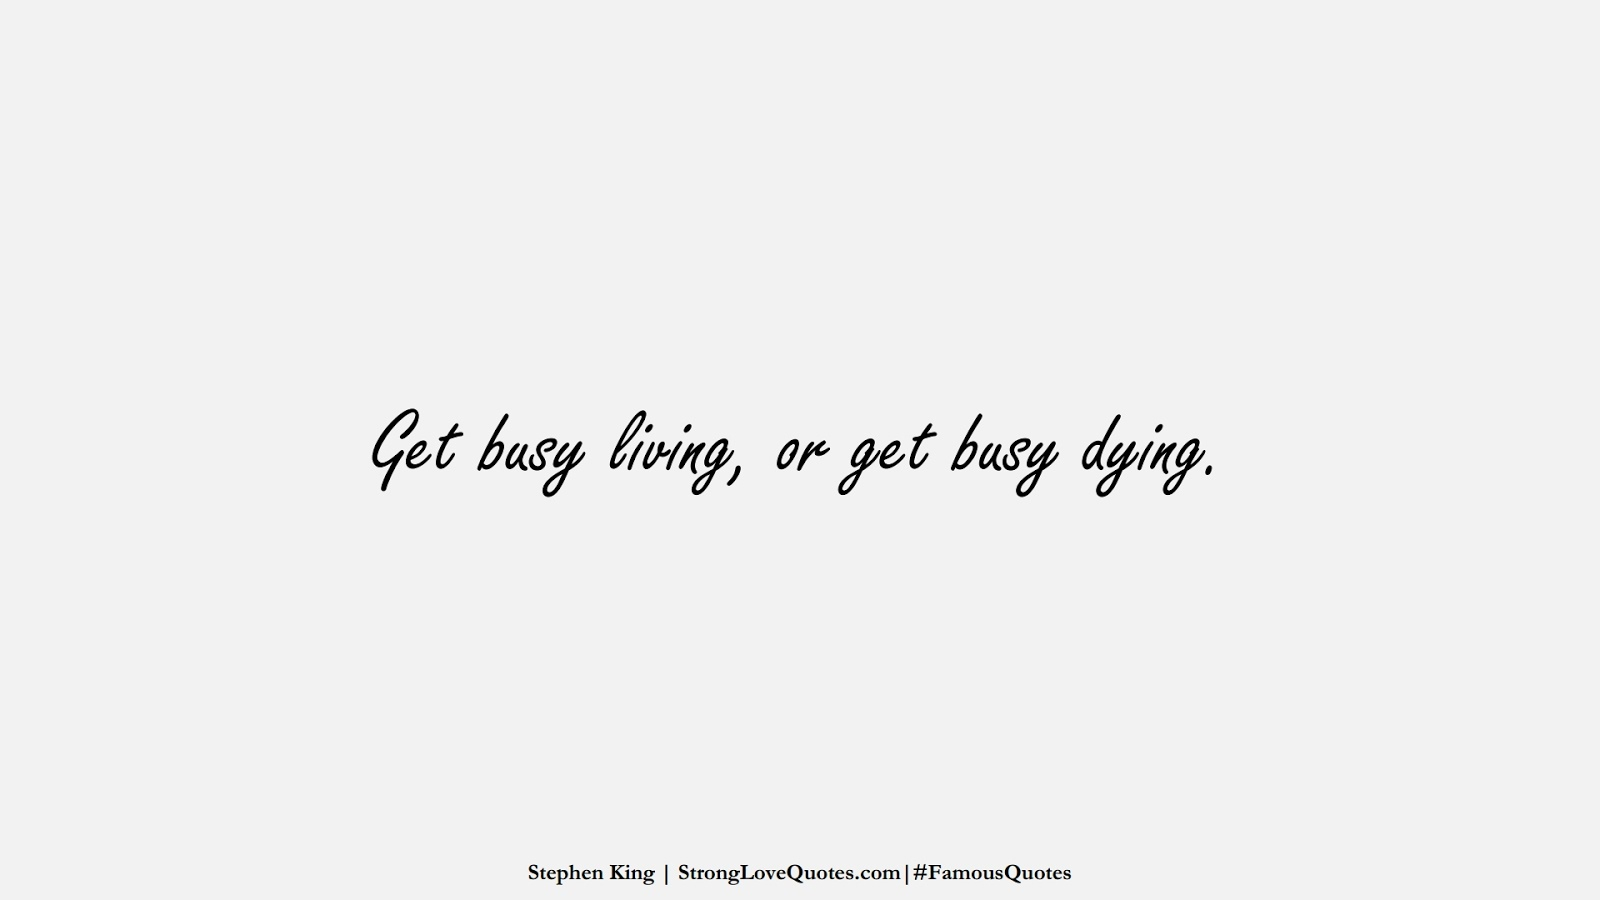 Get busy living, or get busy dying. (Stephen King);  #FamousQuotes